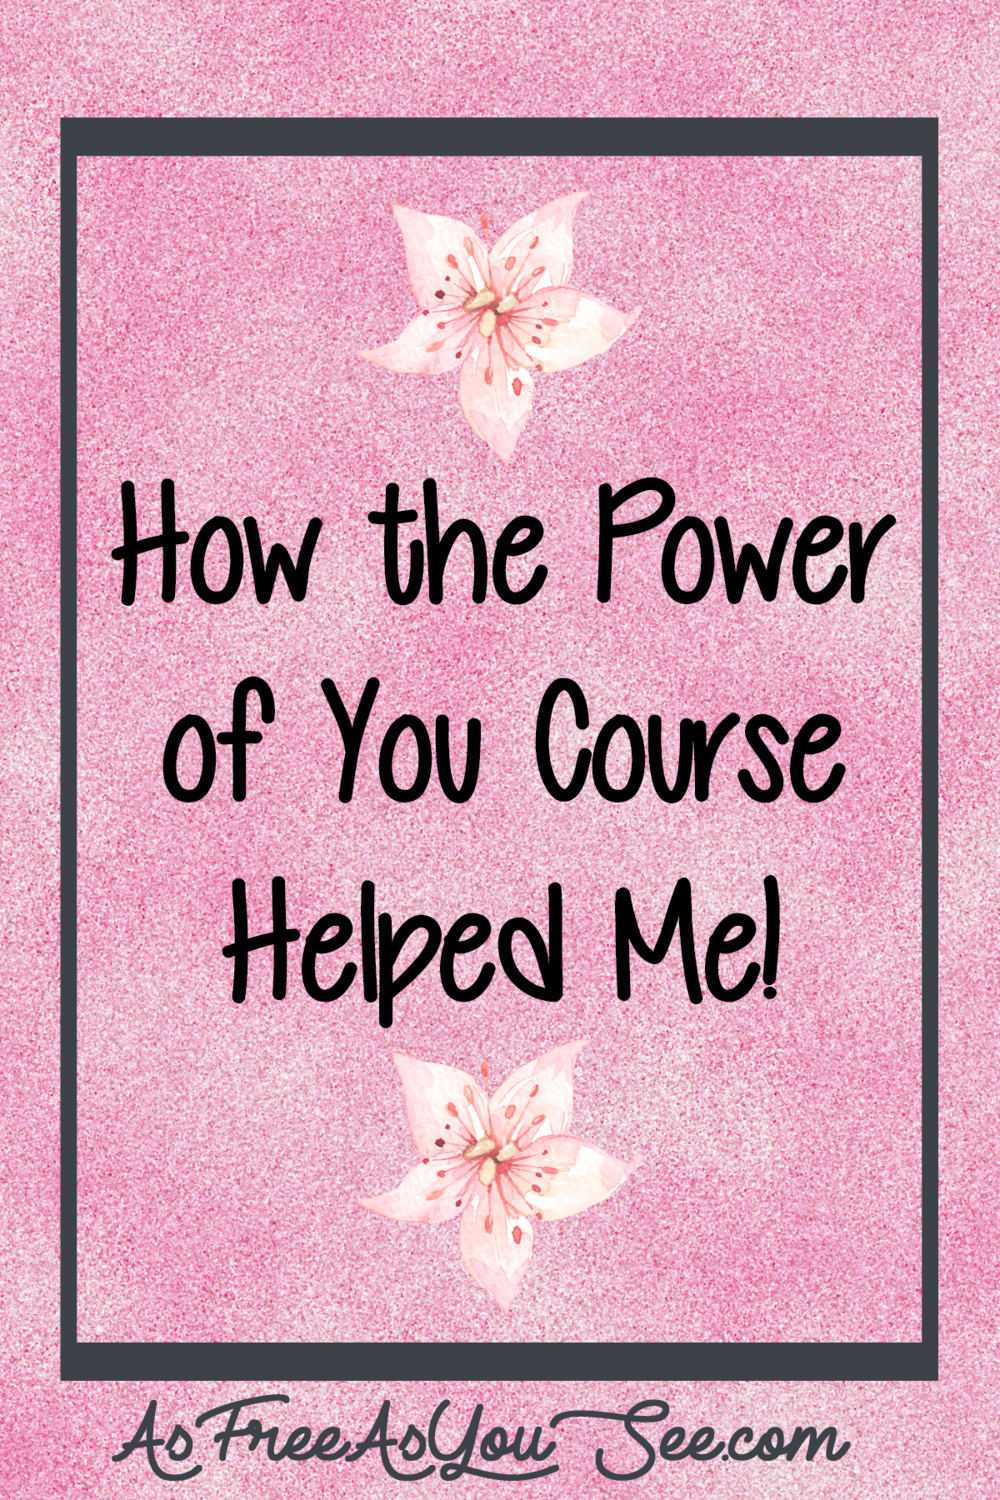 How the Power of You Course Helped Me!